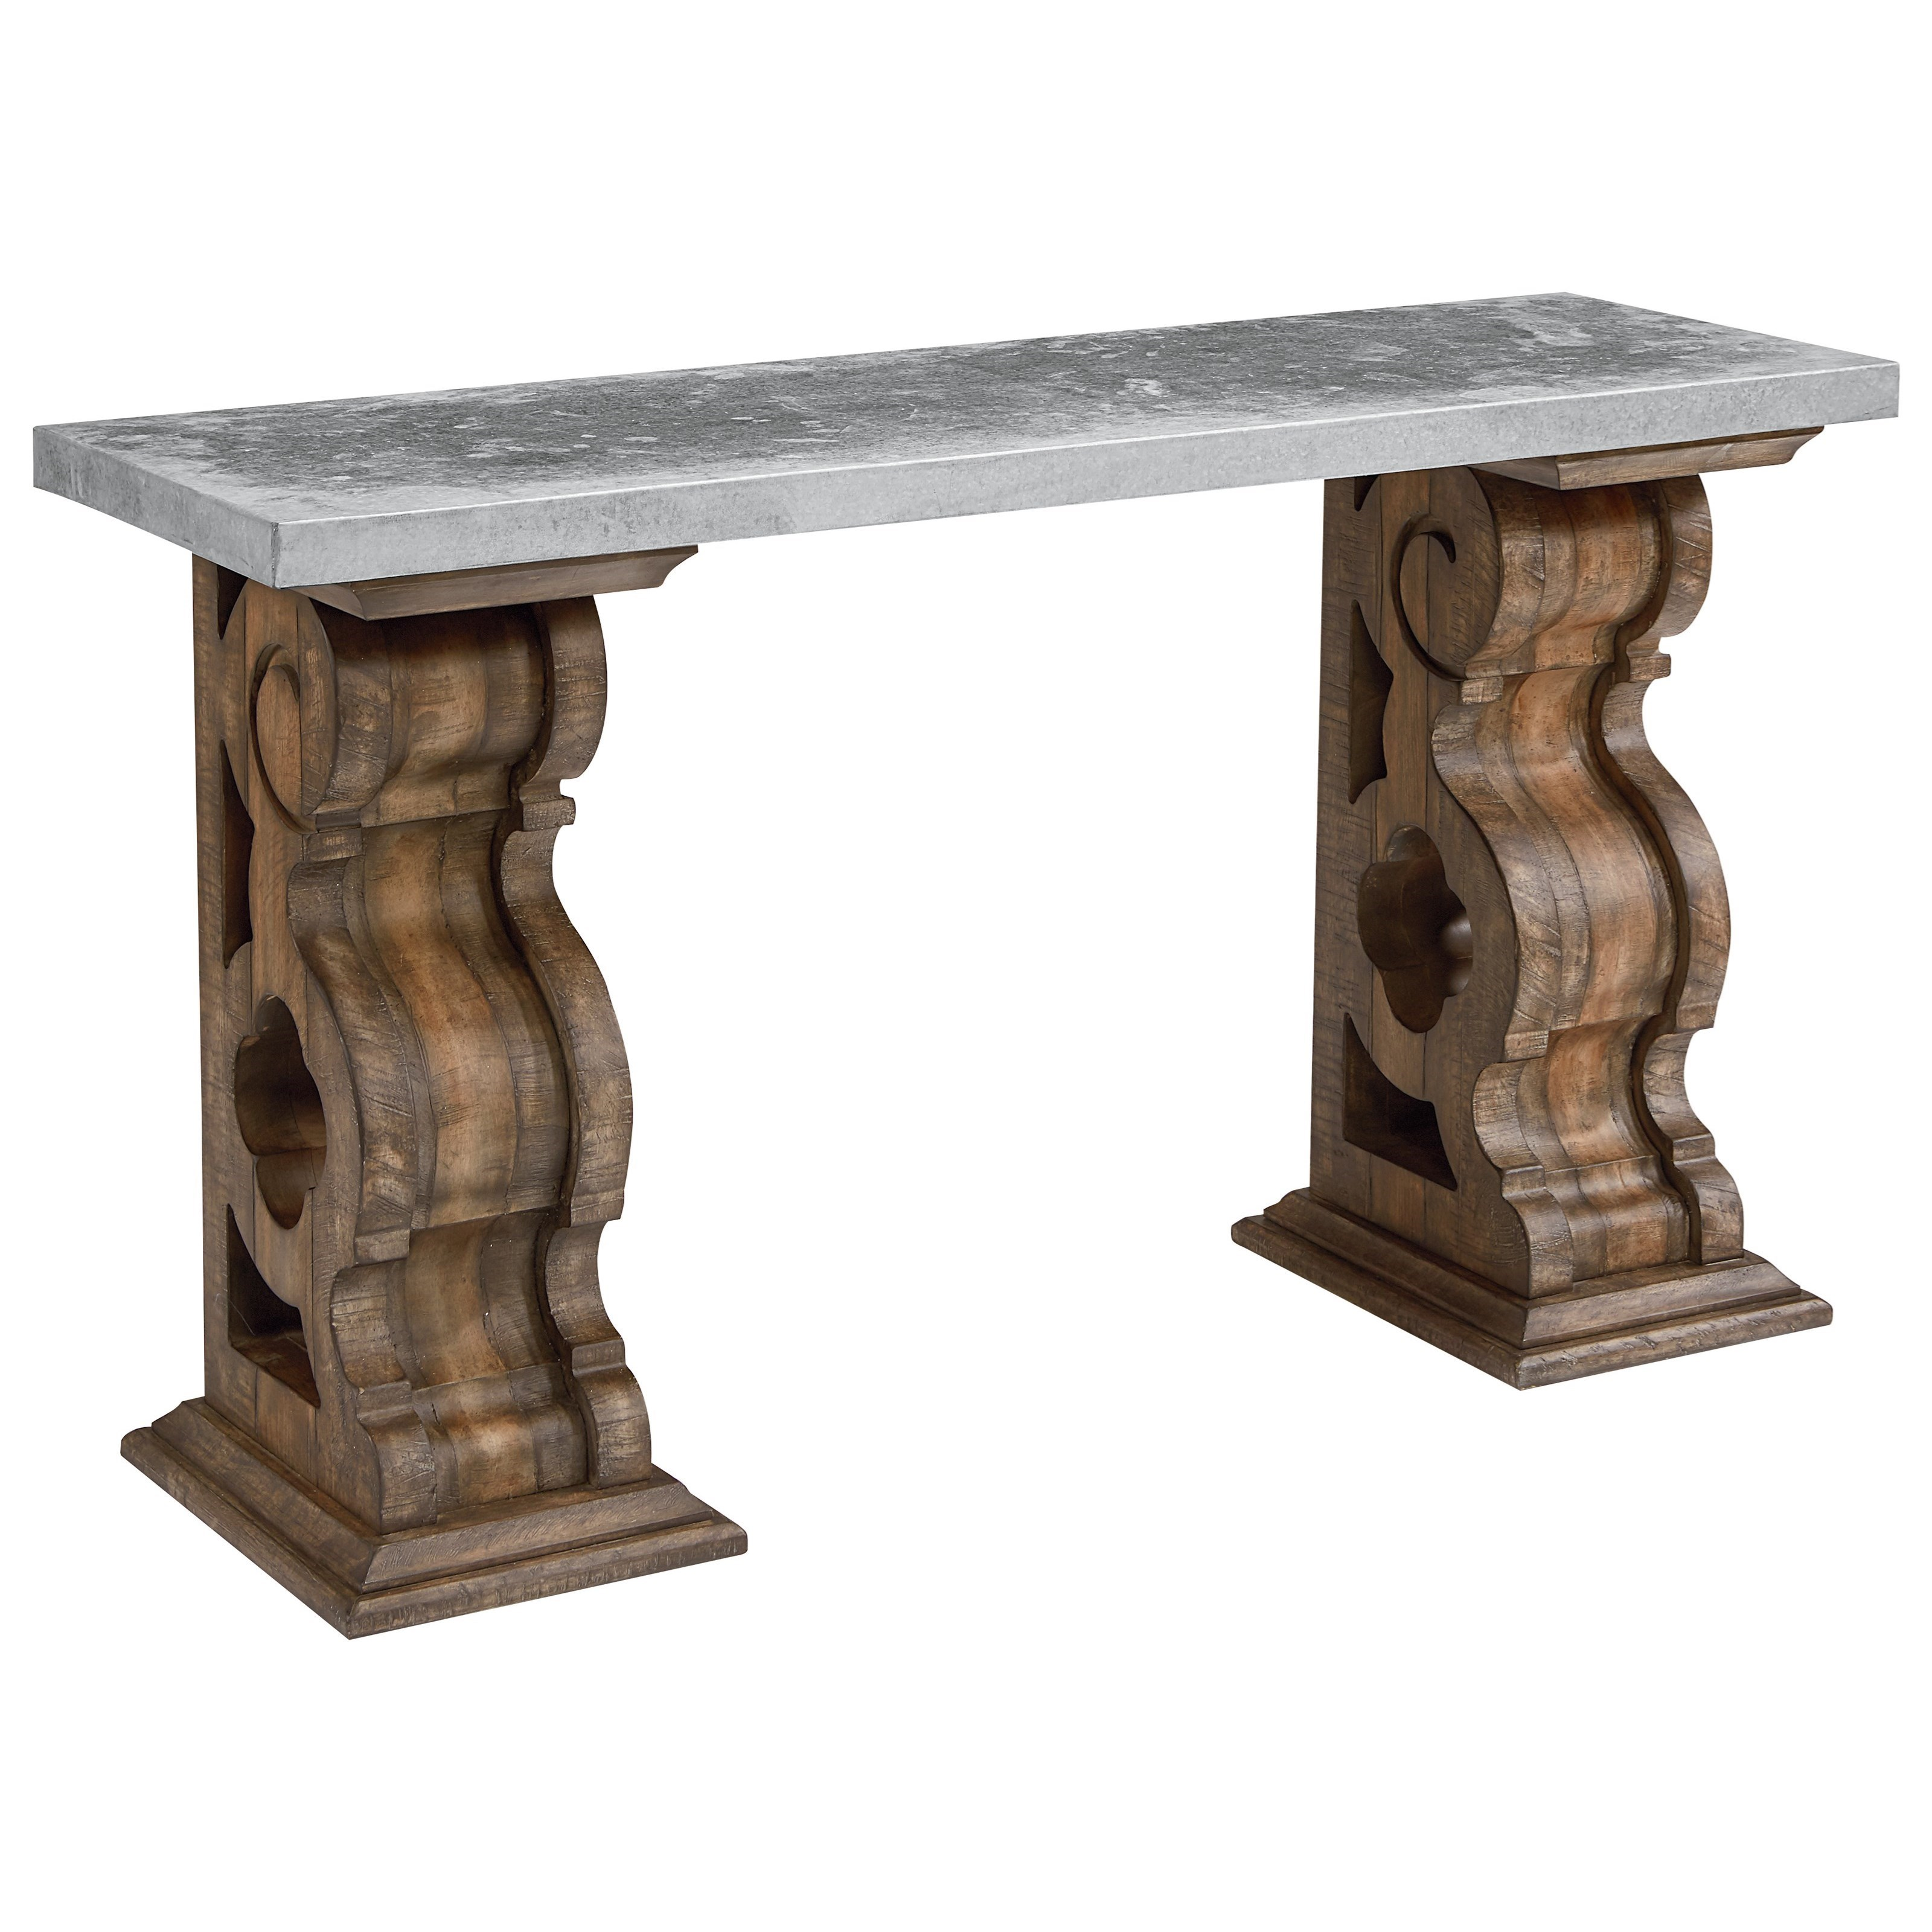 Magnolia Home By Joanna Gaines TraditionalHall Table With Zinc Top ...